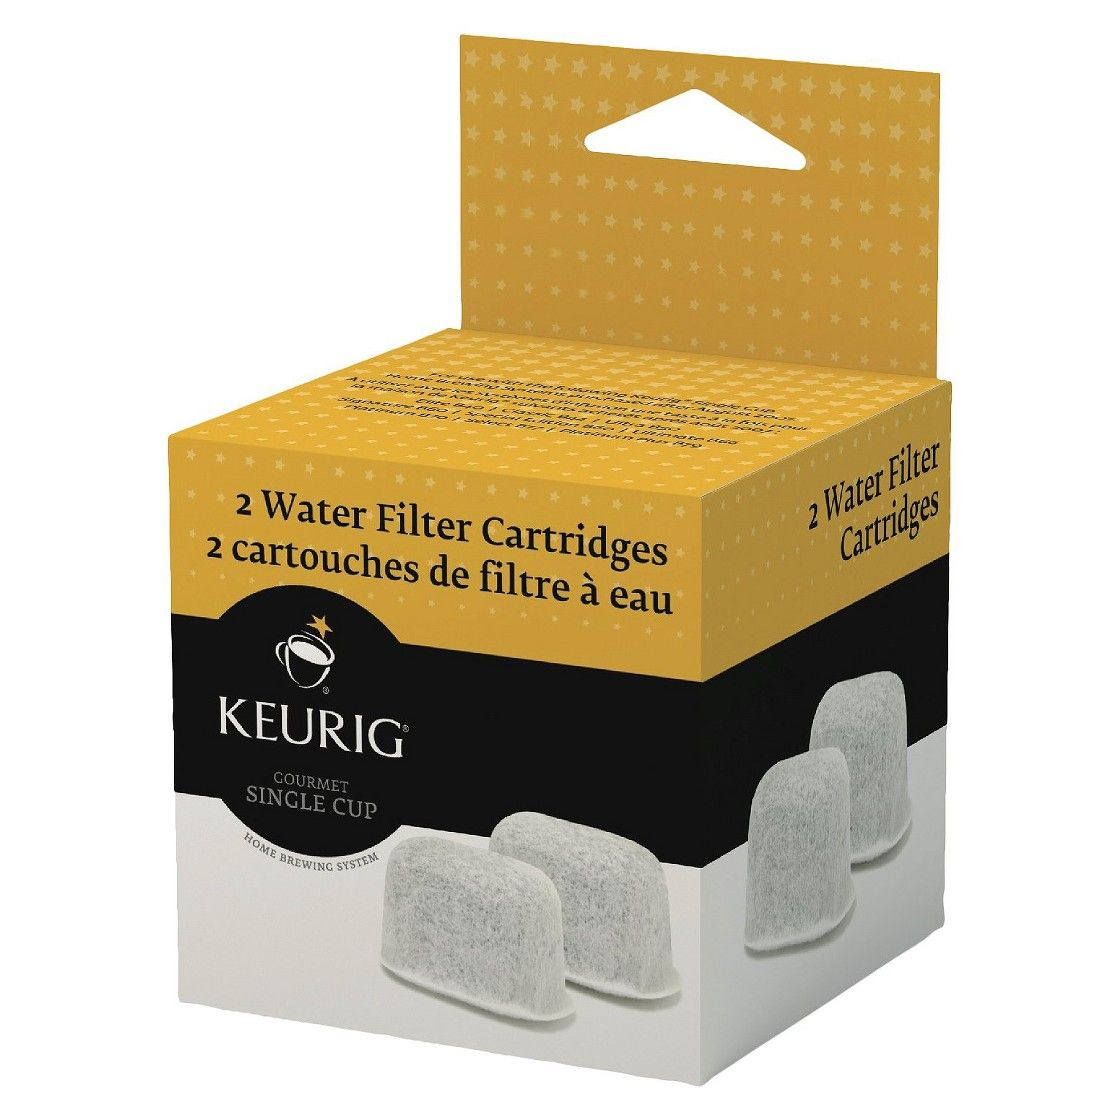 Keurig Water Filter Cartridge Refills 2pk Keurig water